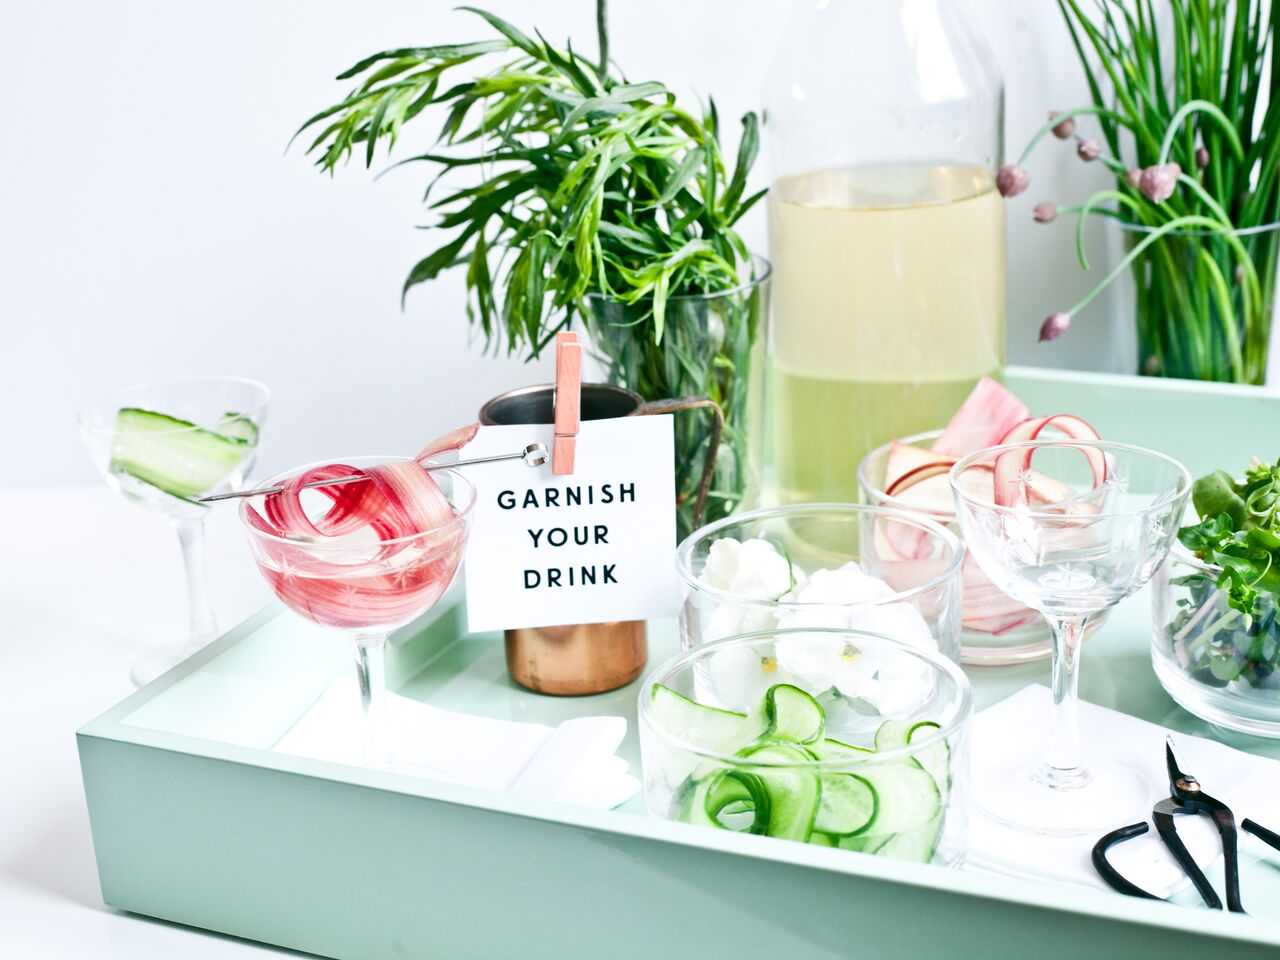 garden garnishes for drinks- Food Network Feature: How to Style Your Summer Drinks